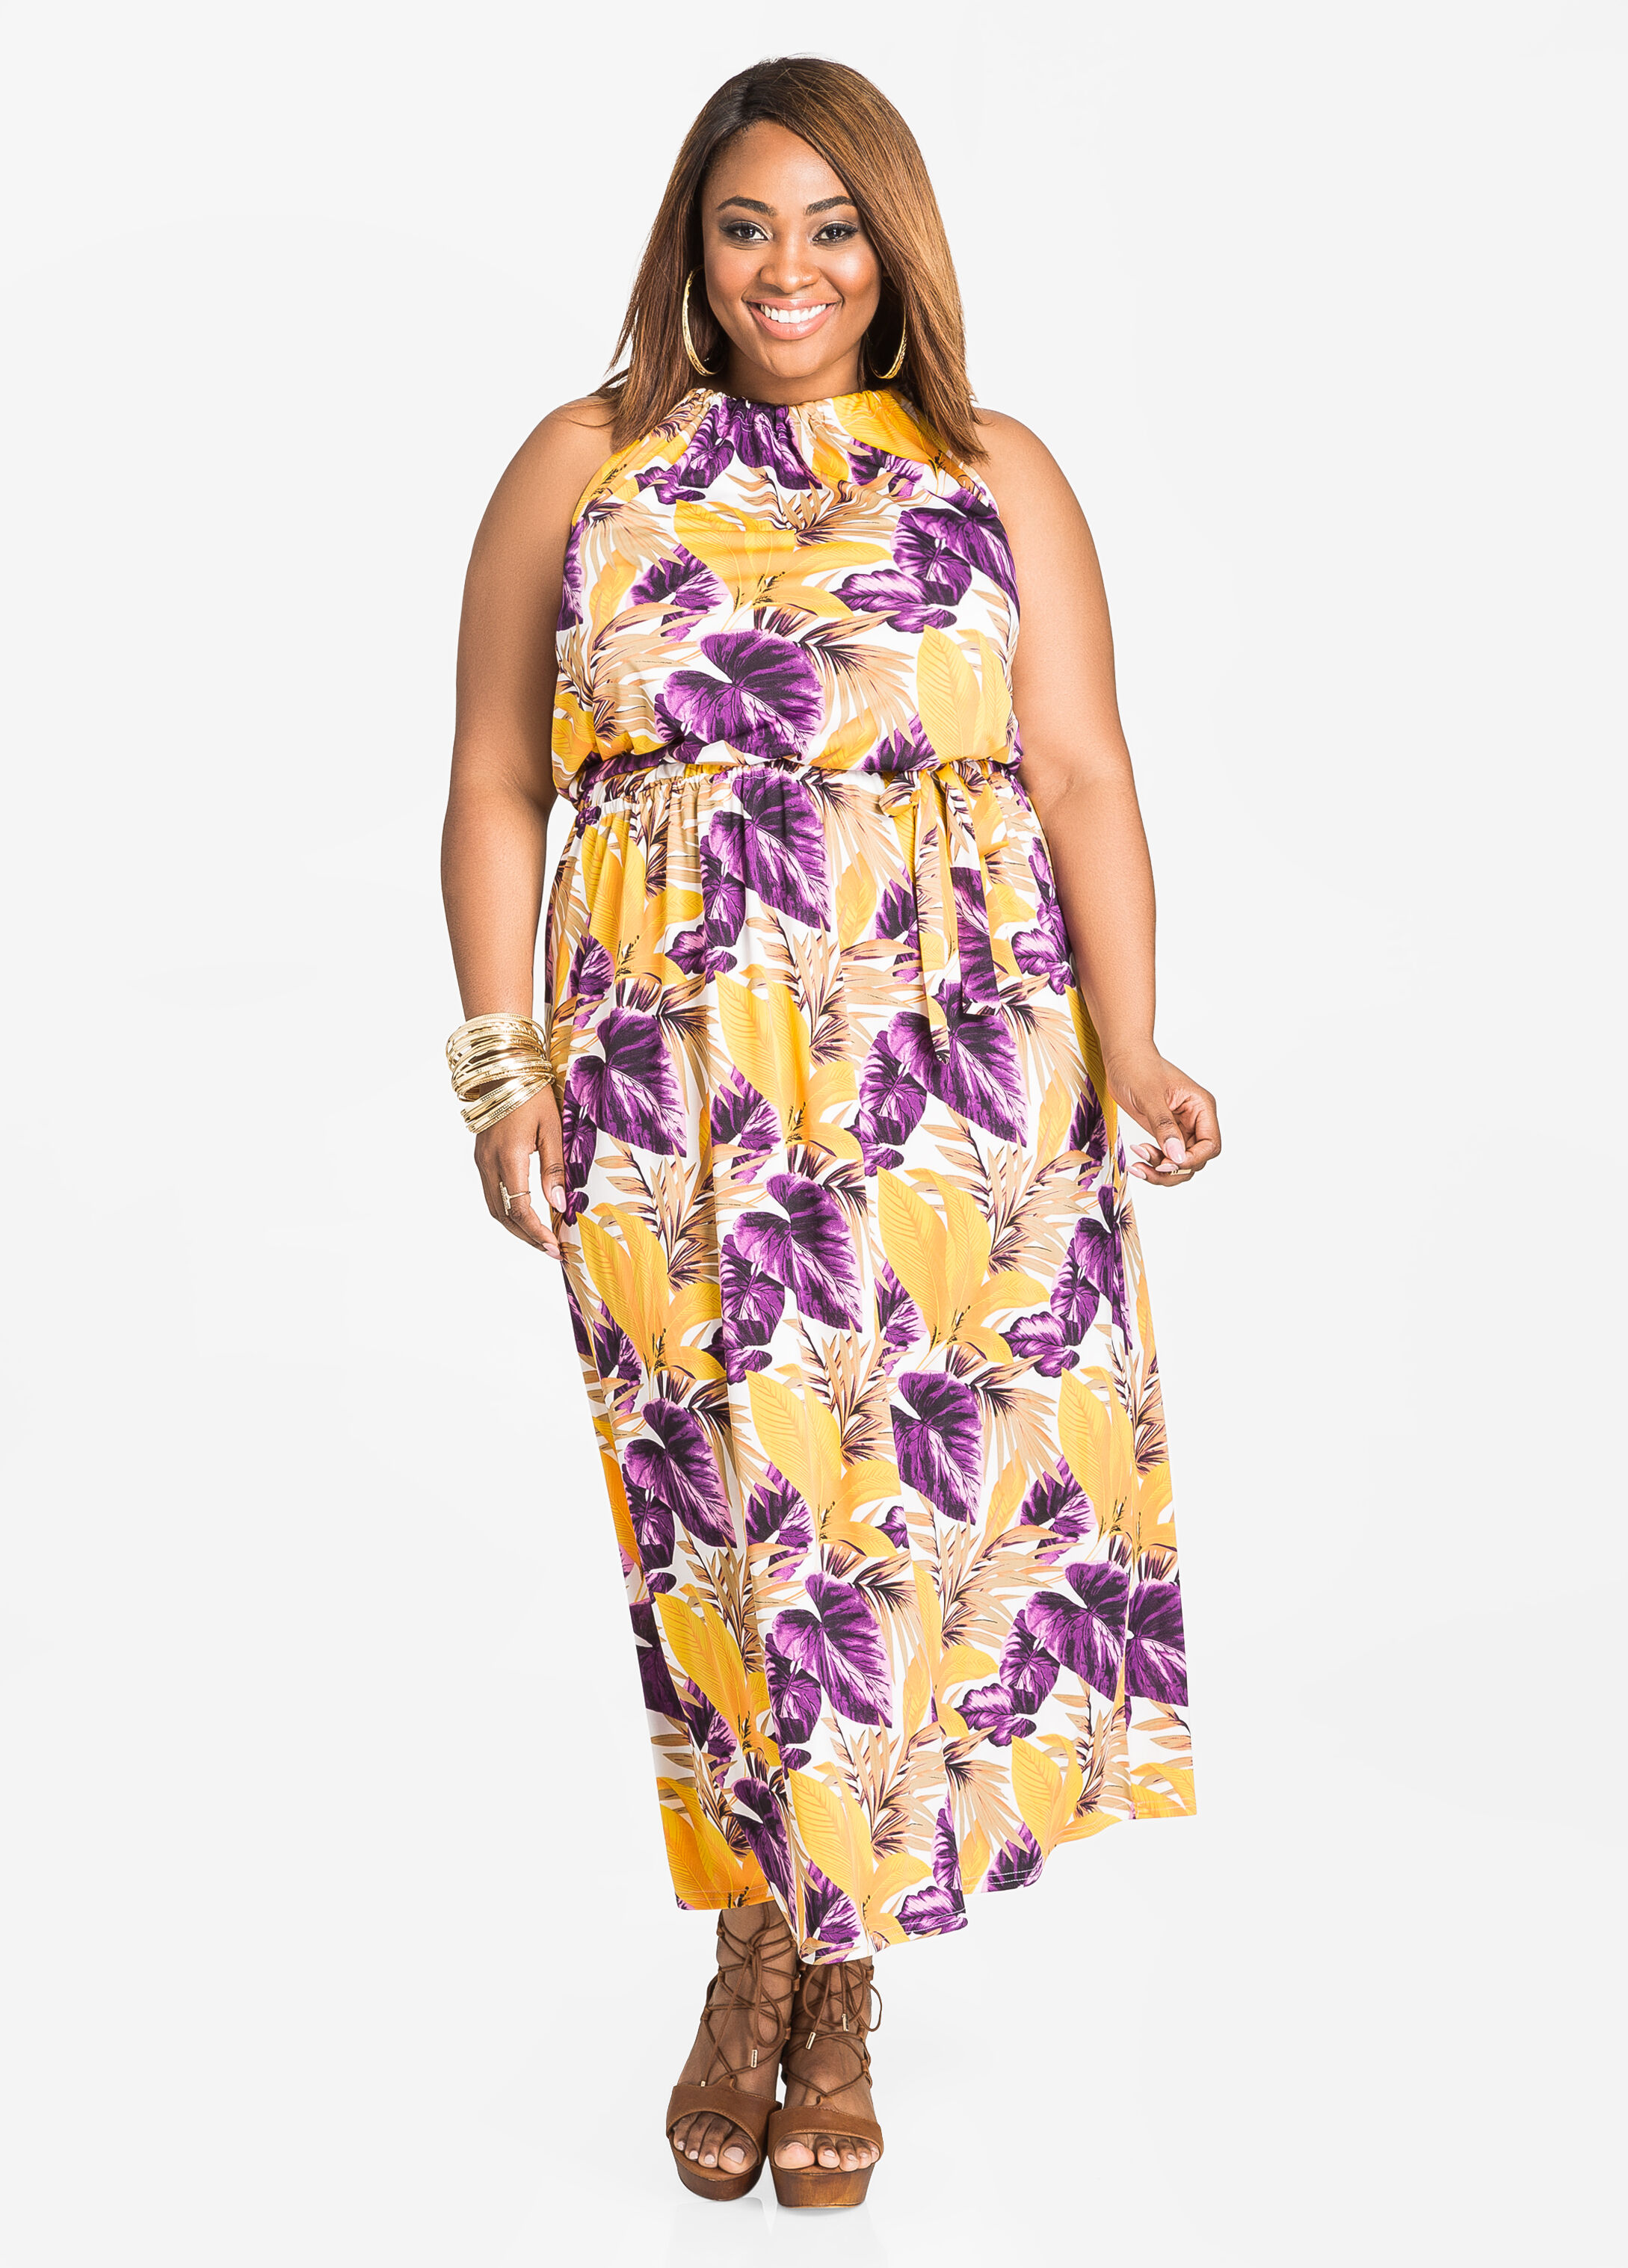 Buy Plus Size Halter Dresses for Women - Ashley Stewart